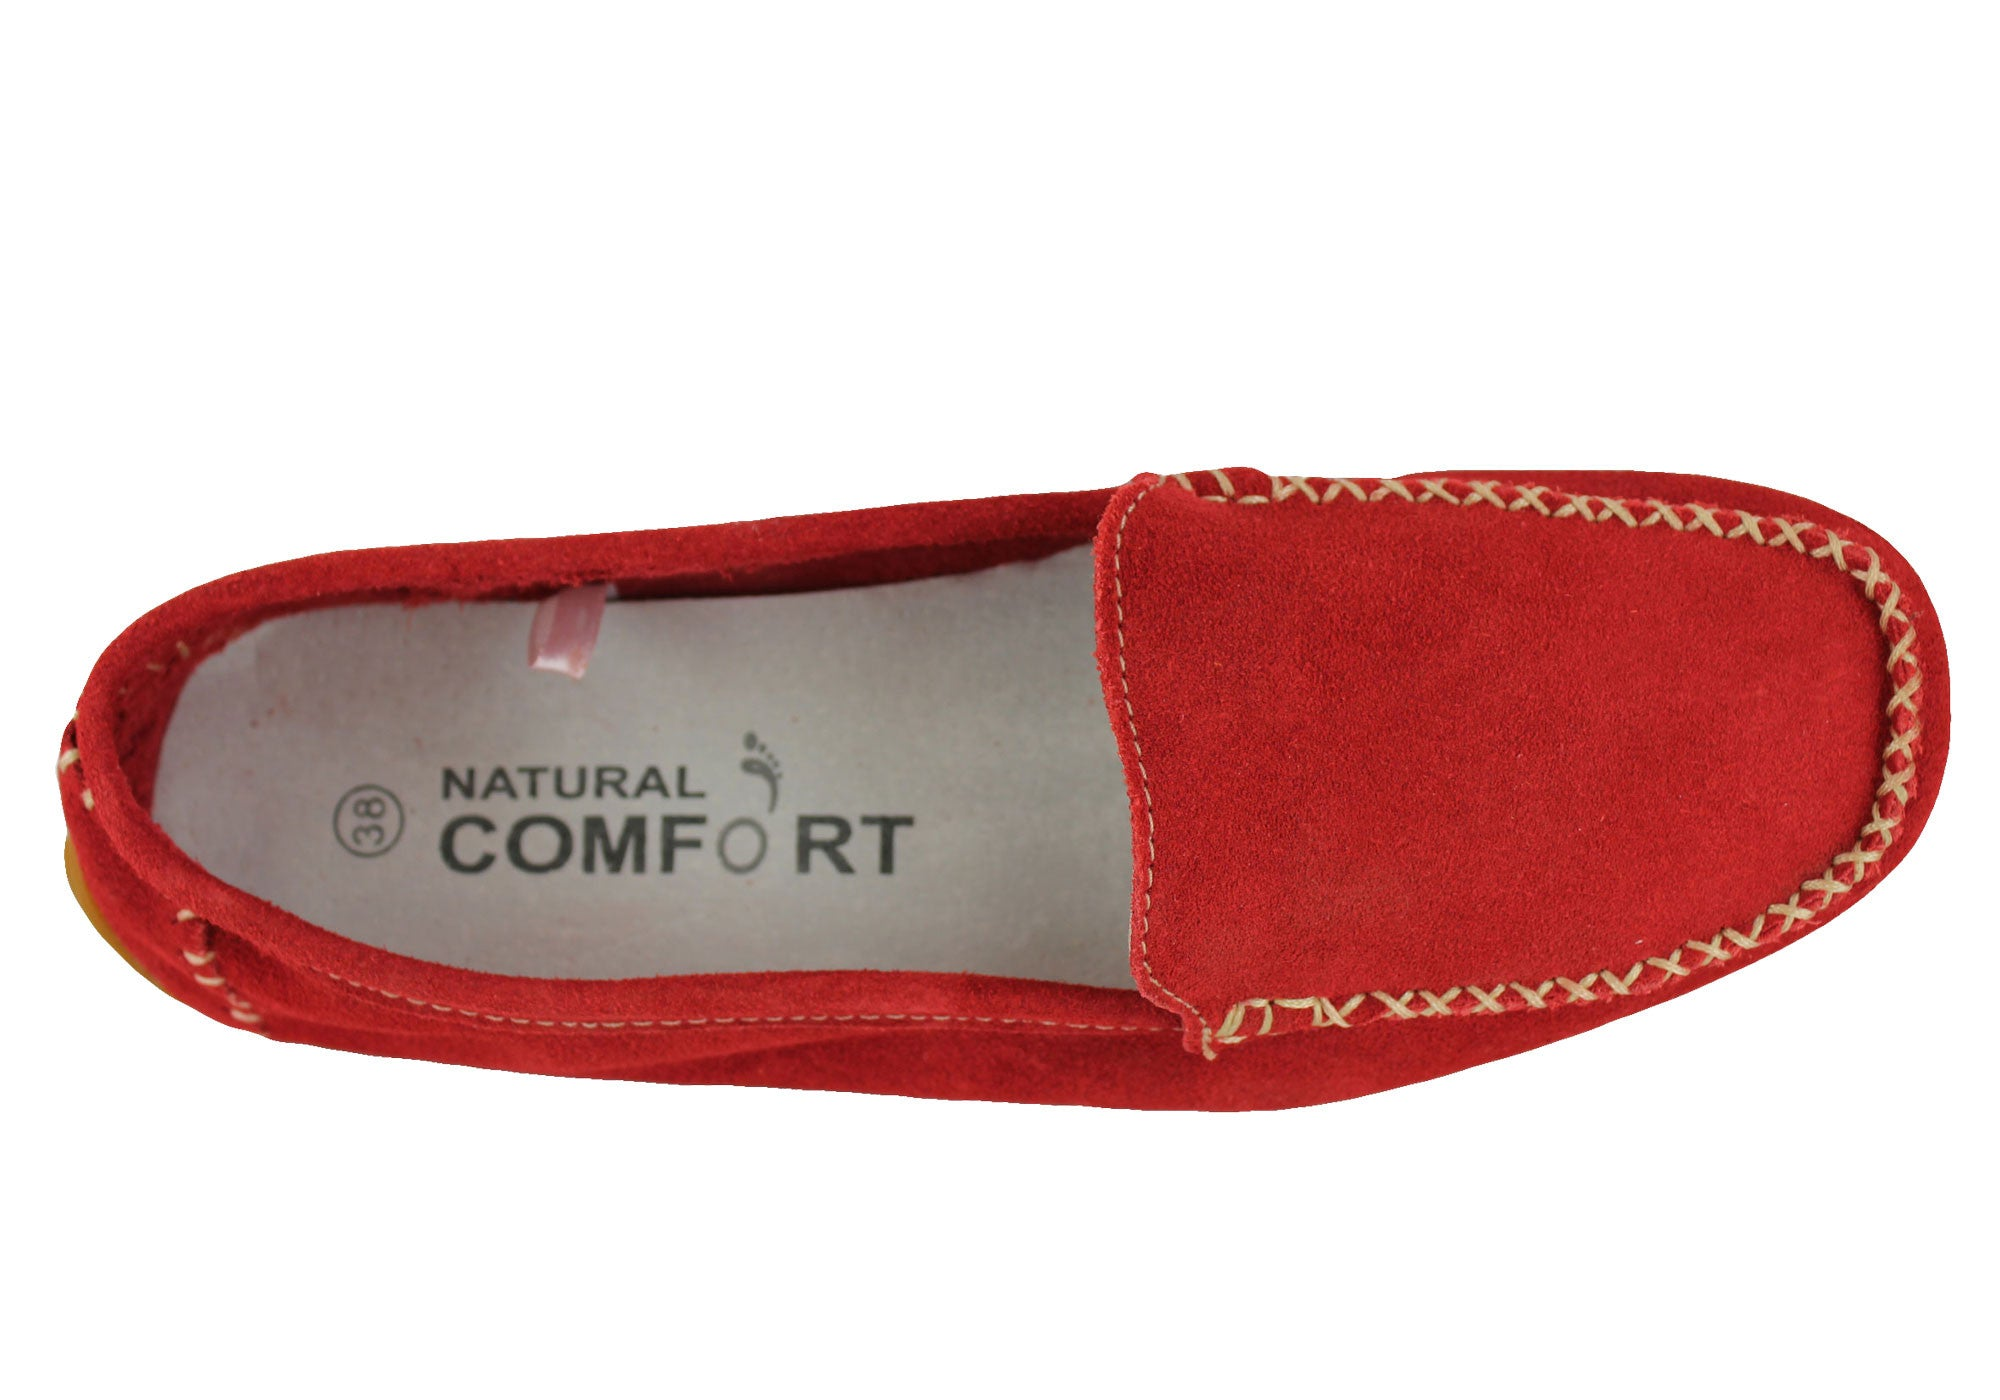 Natural Comfort Womens Loafers Moccassins